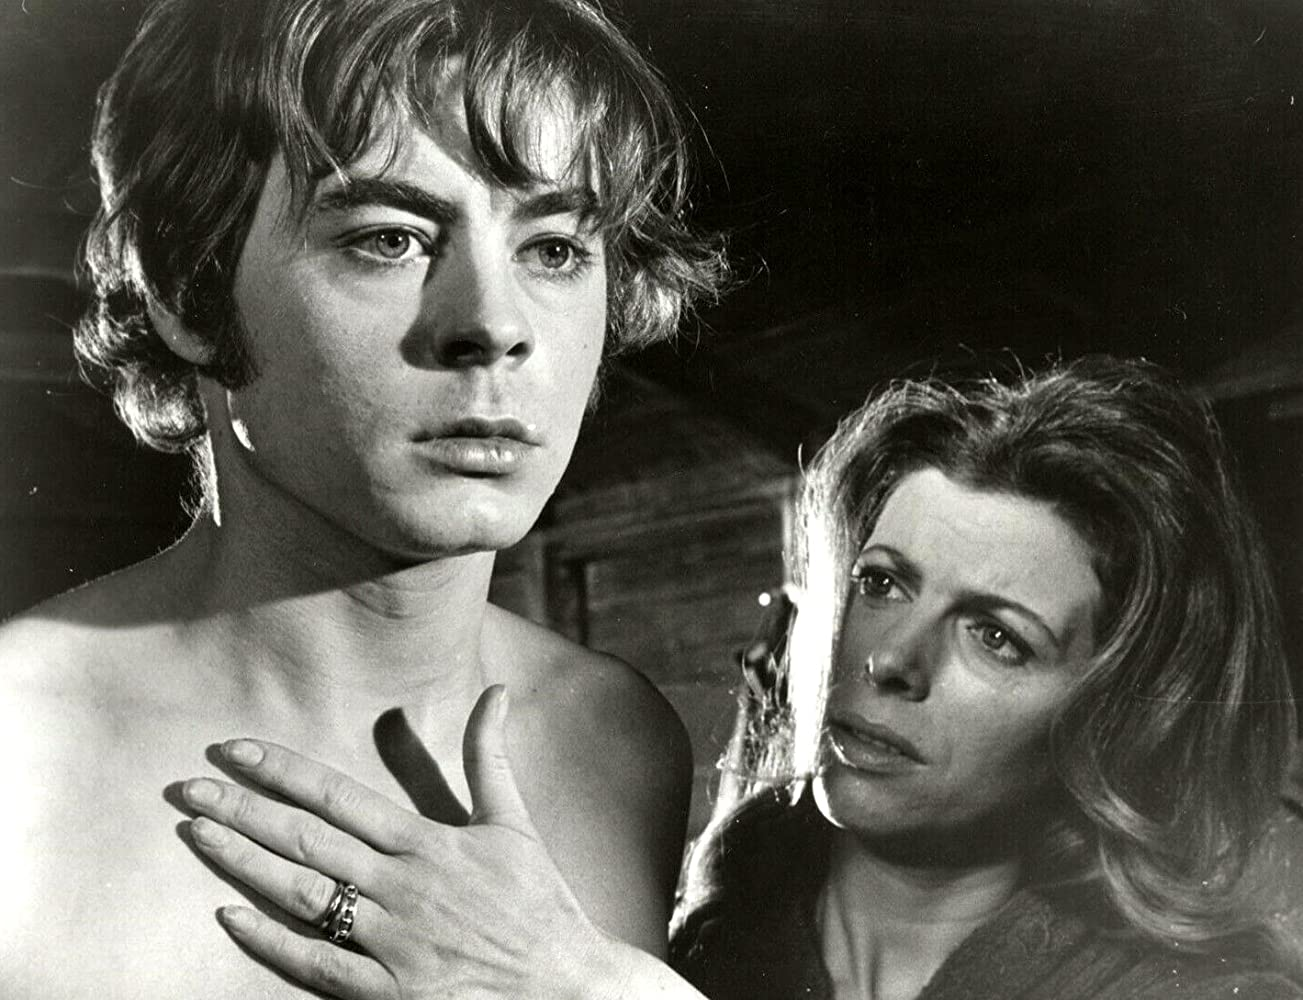 Martin Durnley (Hywel Bennett) with Billie Whitelaw in Twisted Nerve (1968)